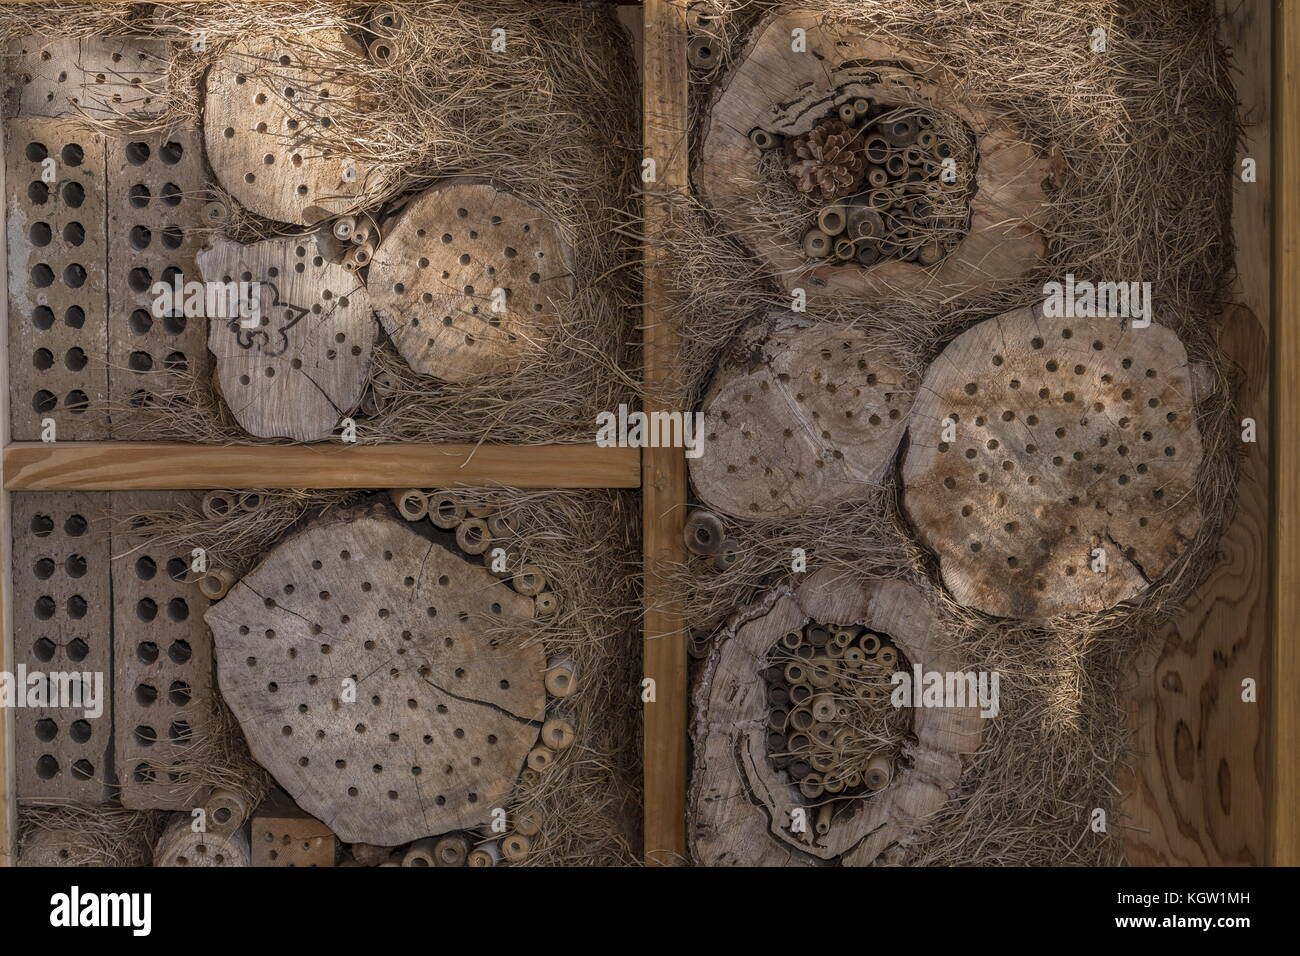 Bee house, to attract solitary bees to nest. Stock Photo